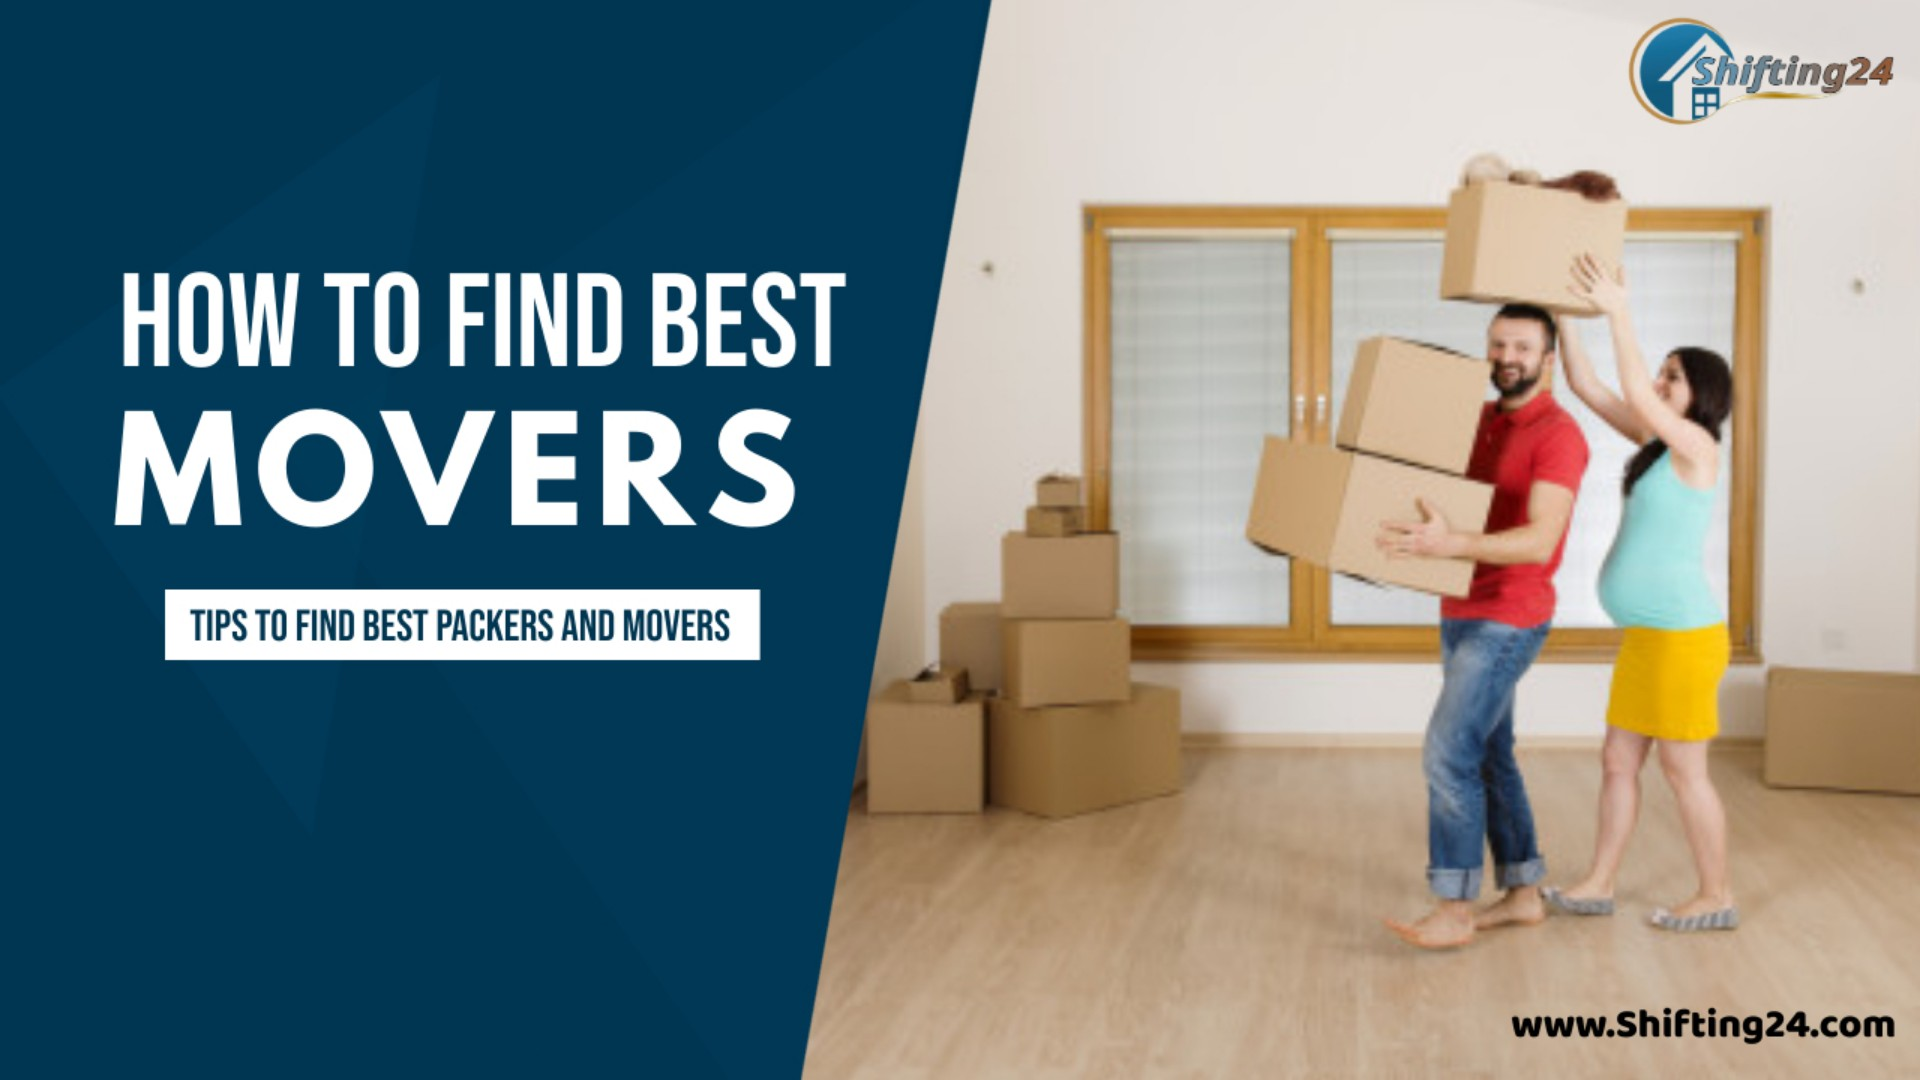 How To Find Best Packers And Movers Company